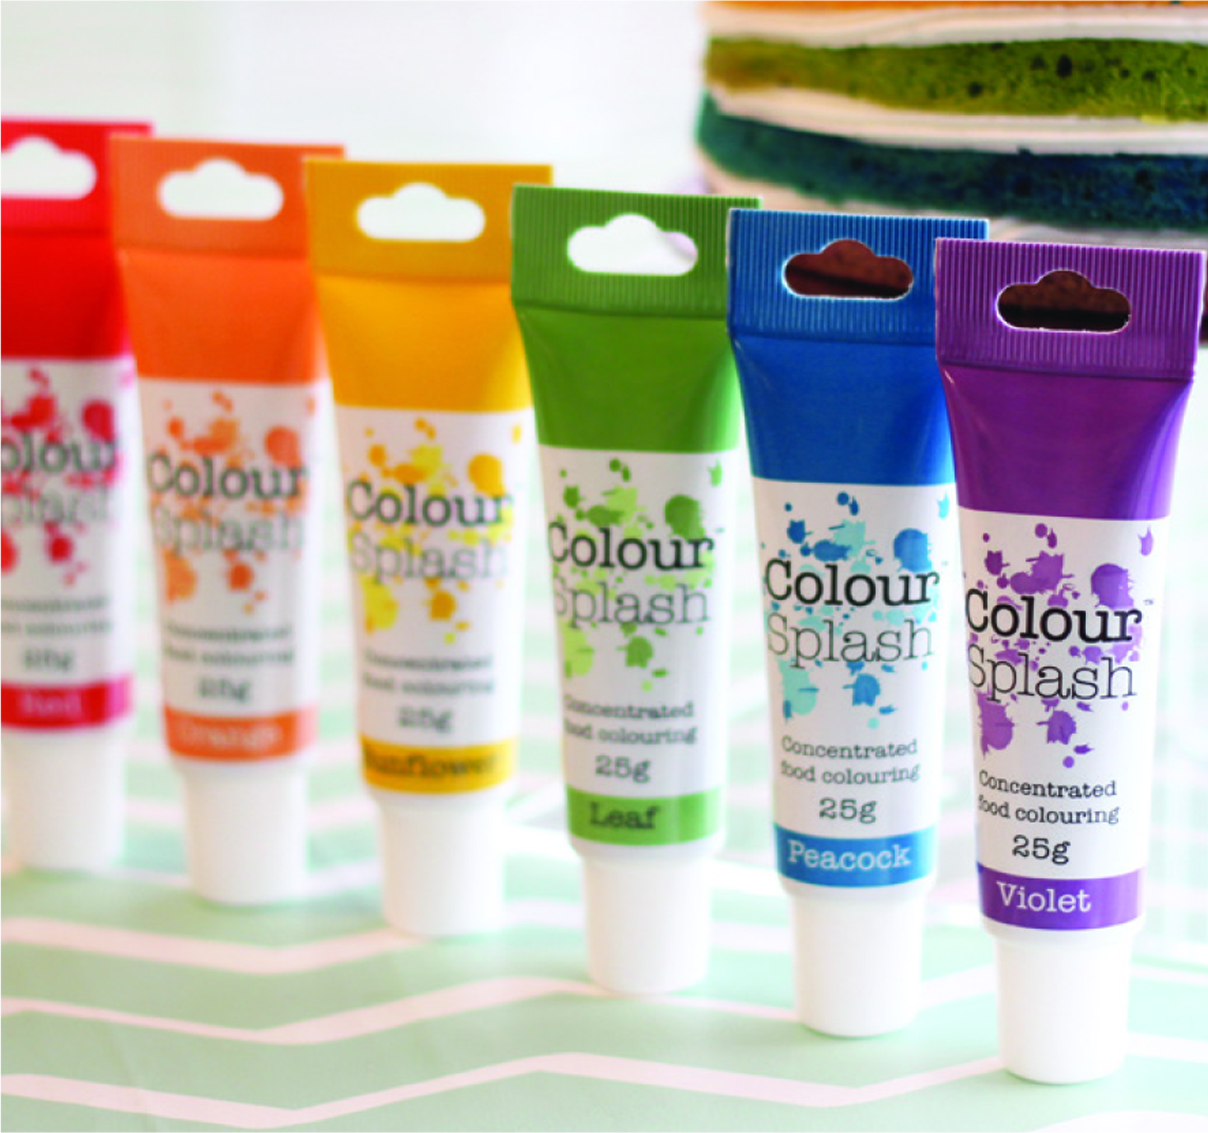 Culpitt COlour Splash products